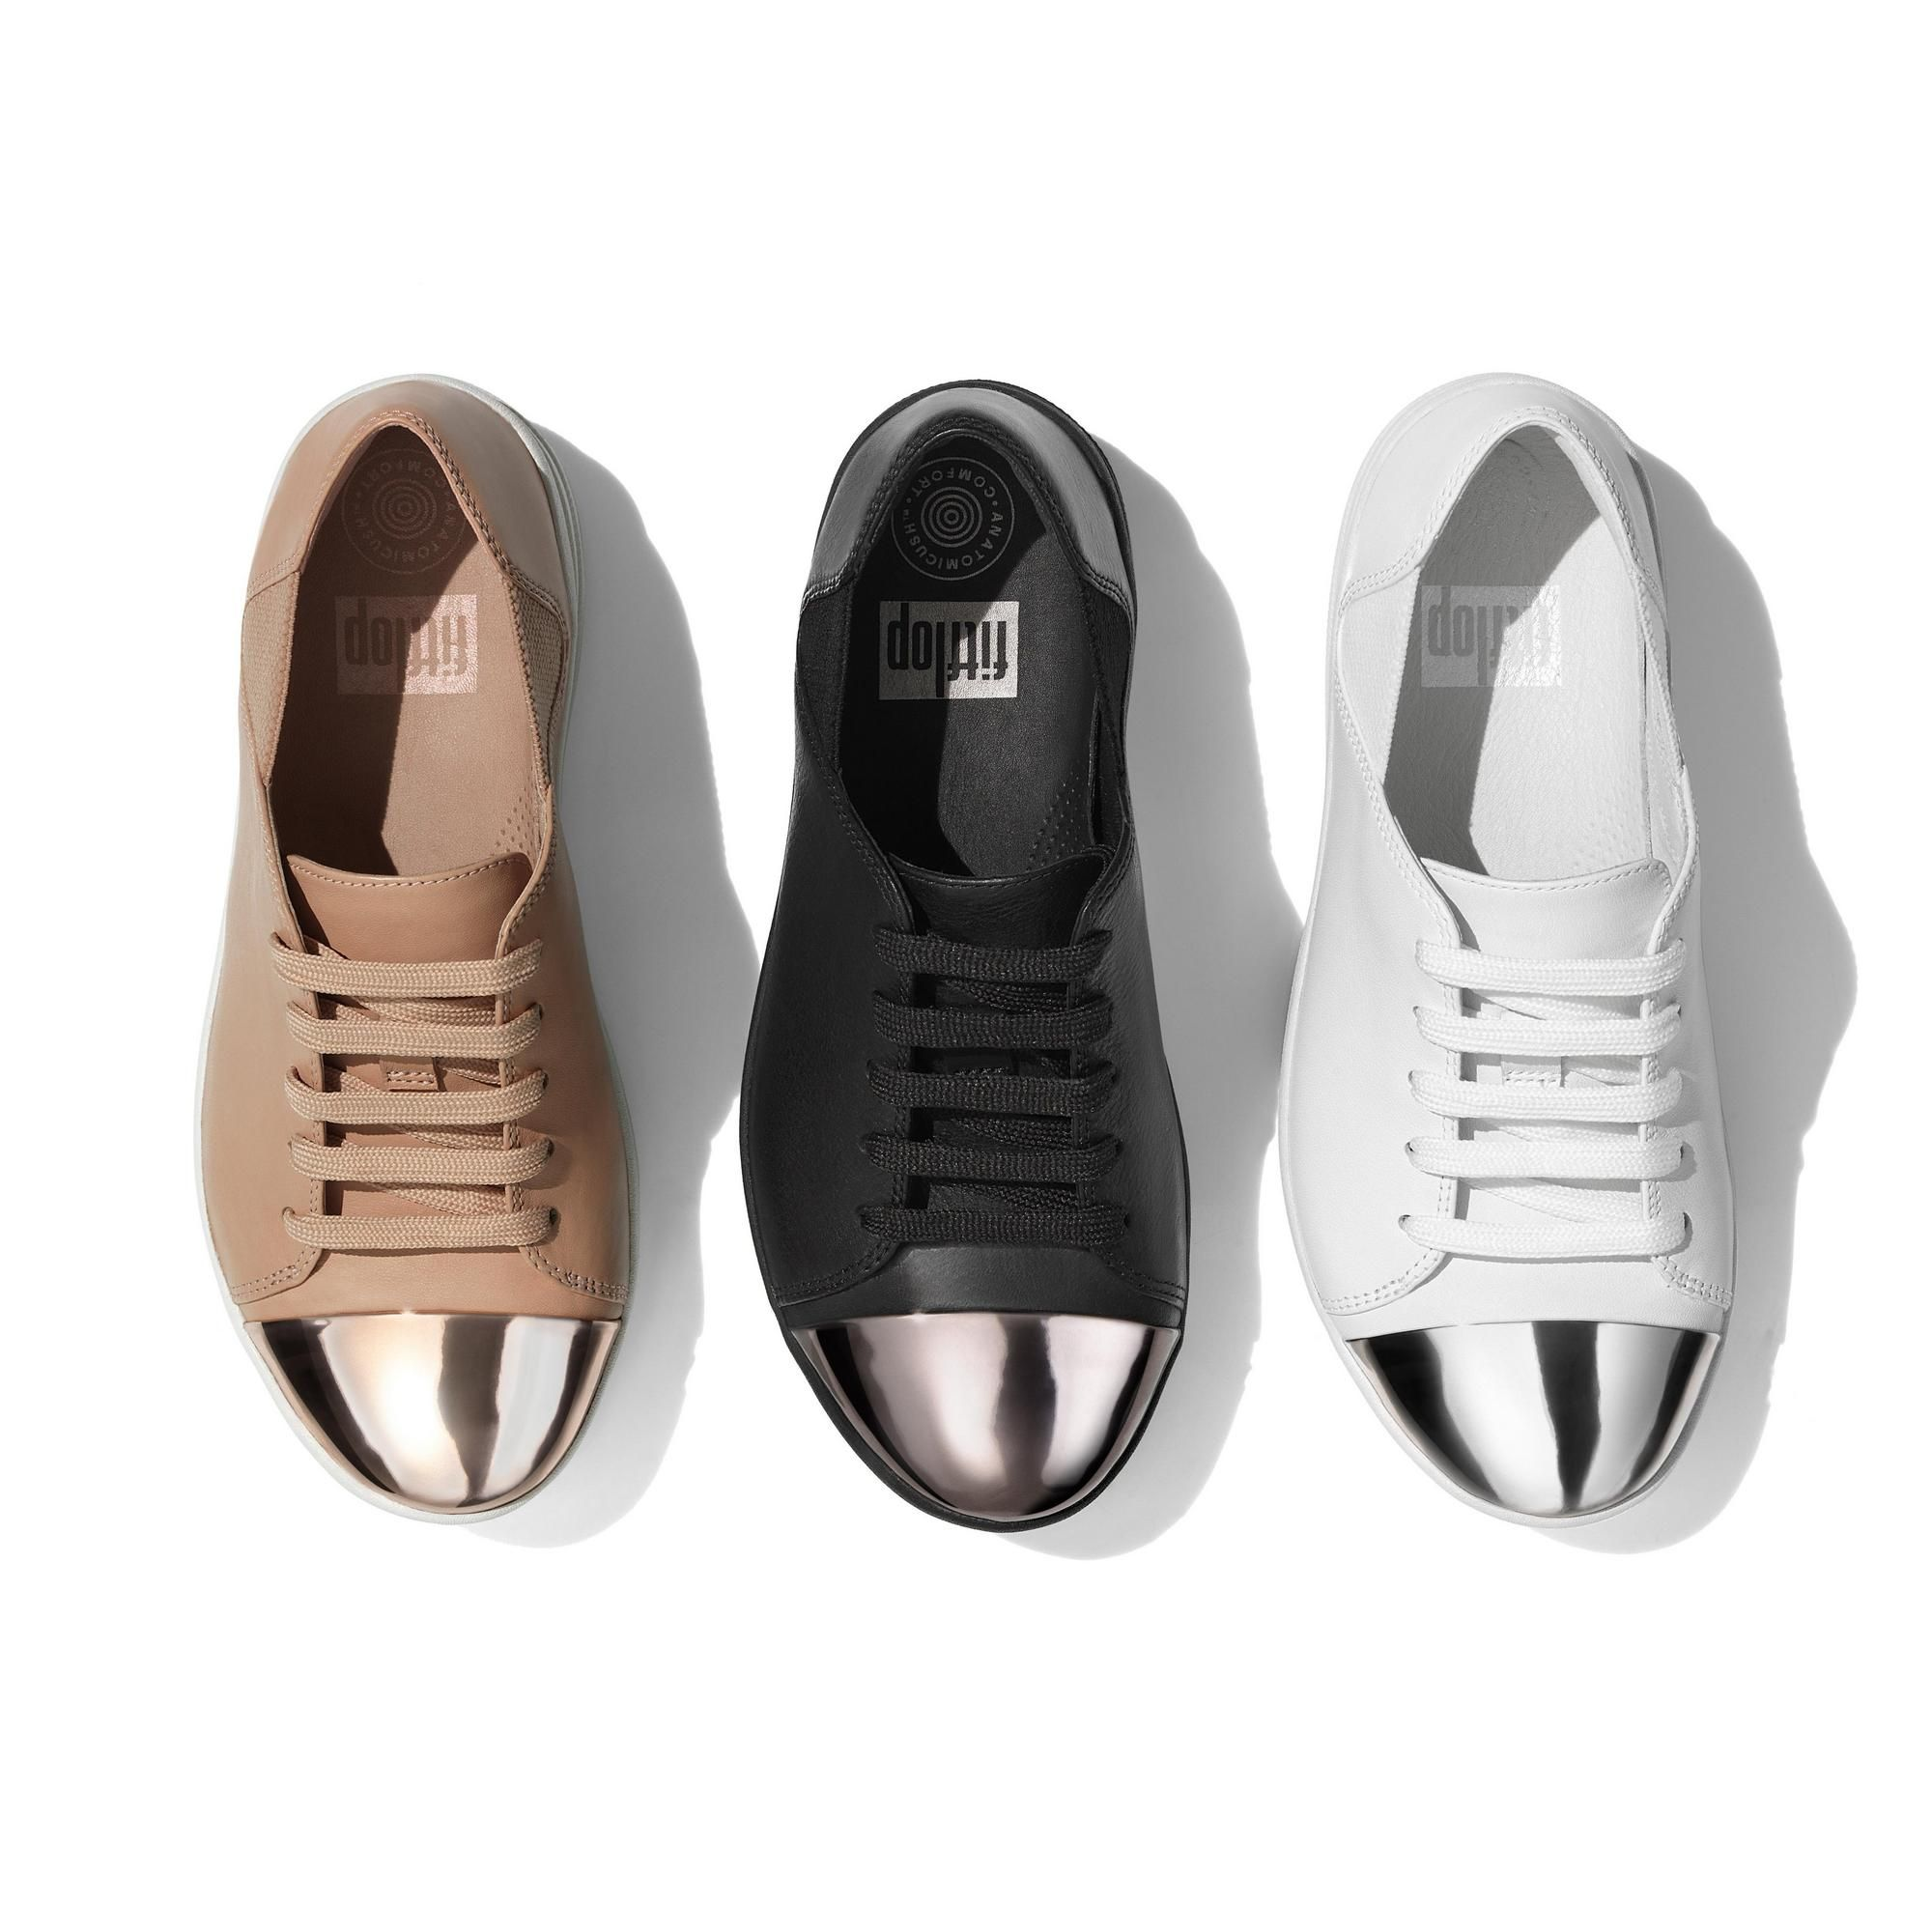 edbe8682354c0 F-SPORTY MIRROR-TOE LEATHER LACE-UP SNEAKERS Urban White FitFlop Official  Online Store